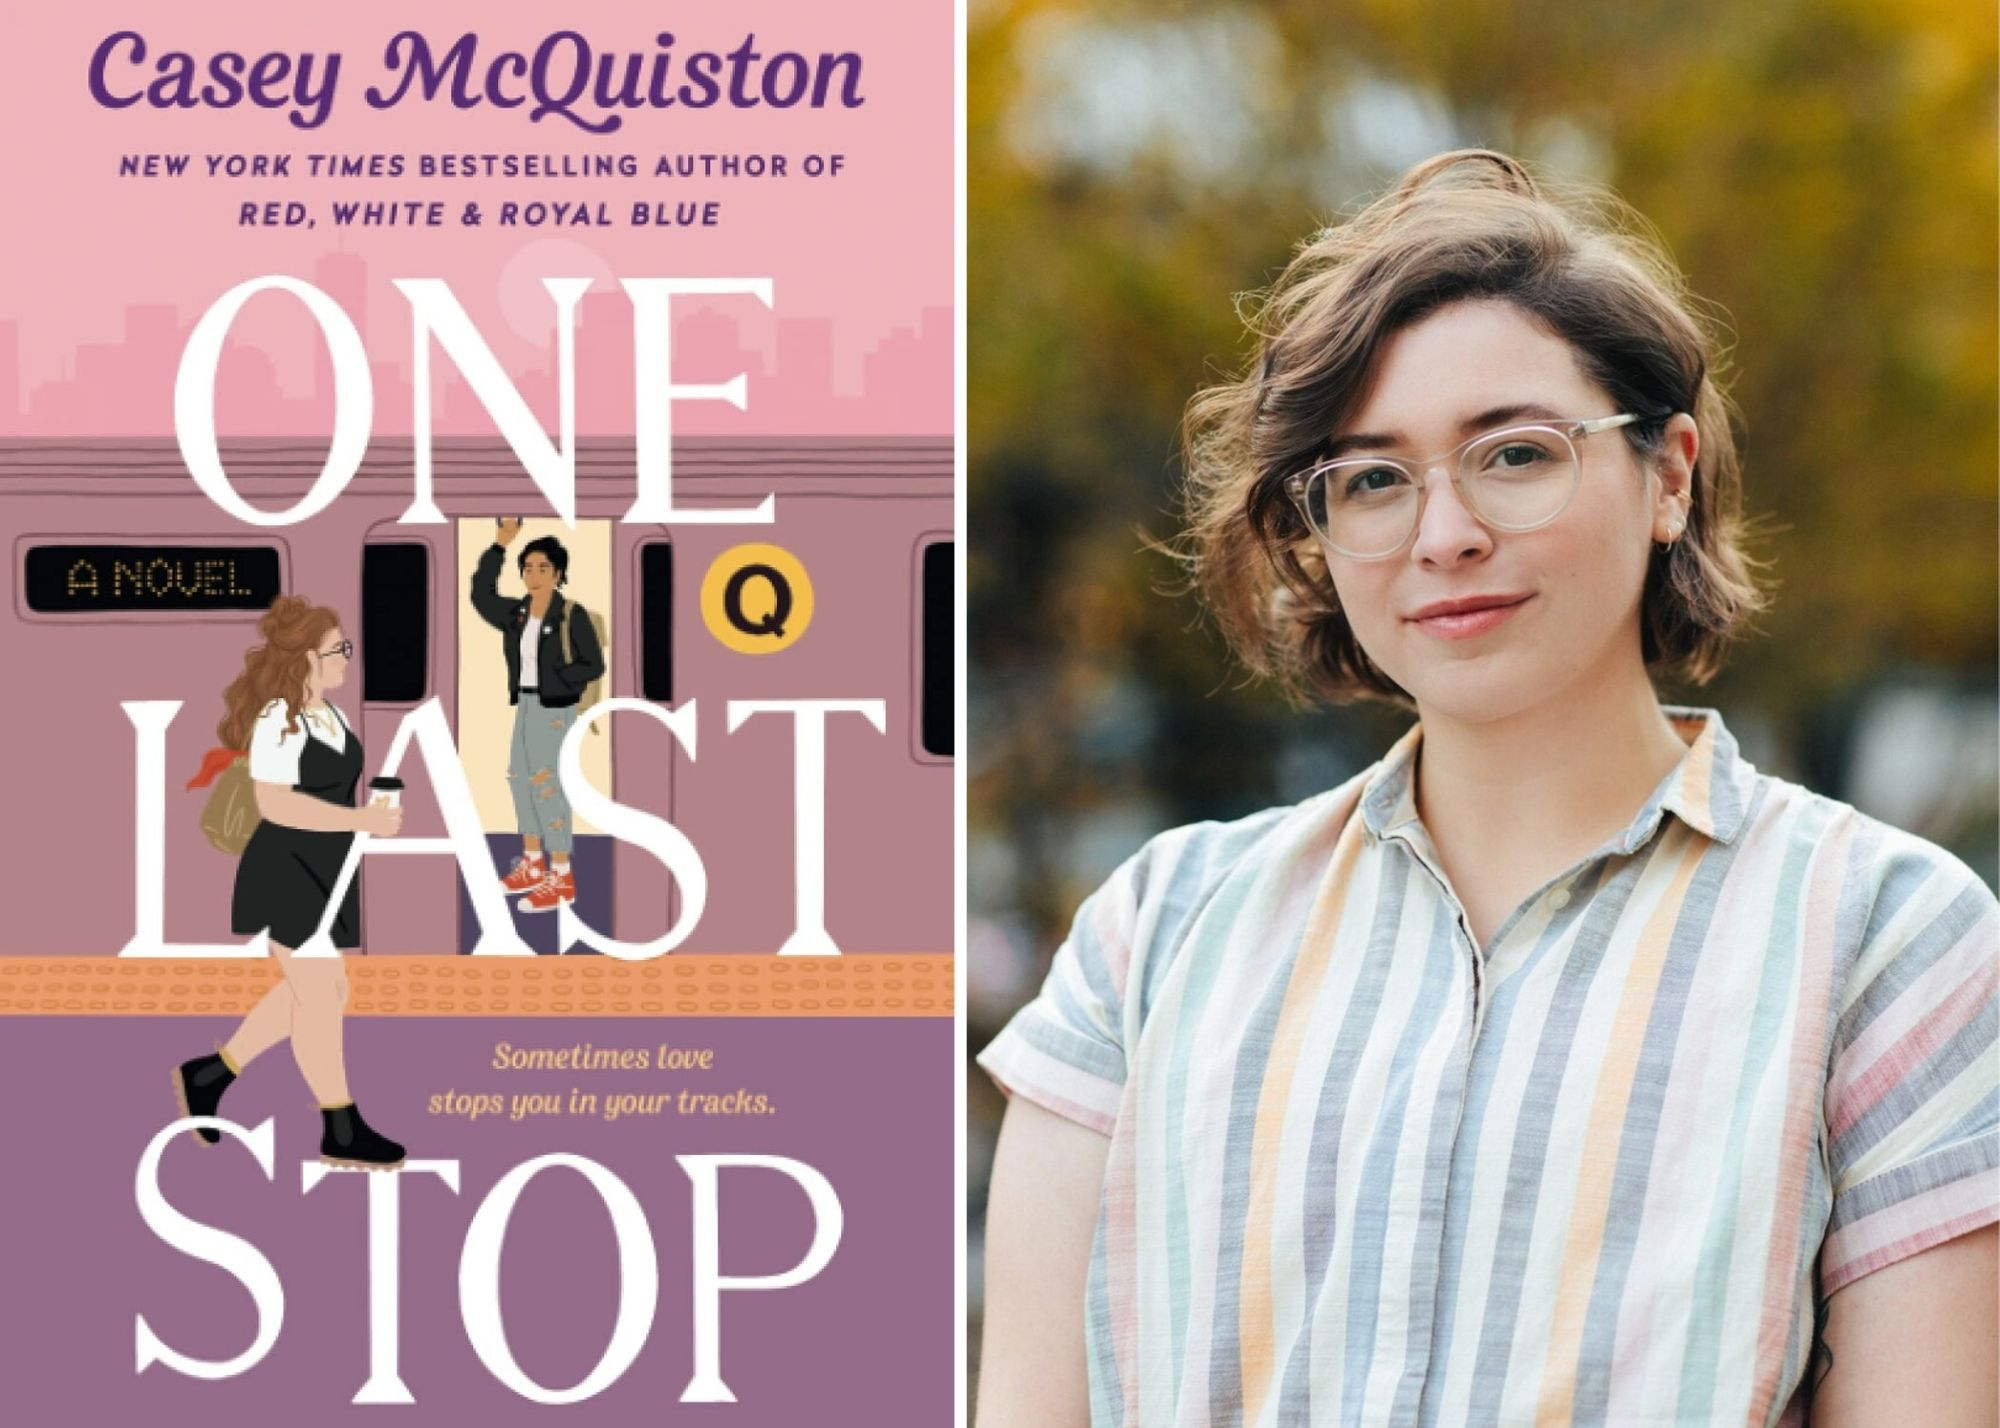 BOOK REVIEW: 'One Last Stop' by Casey McQuiston is More Than a Time Traveling Romance